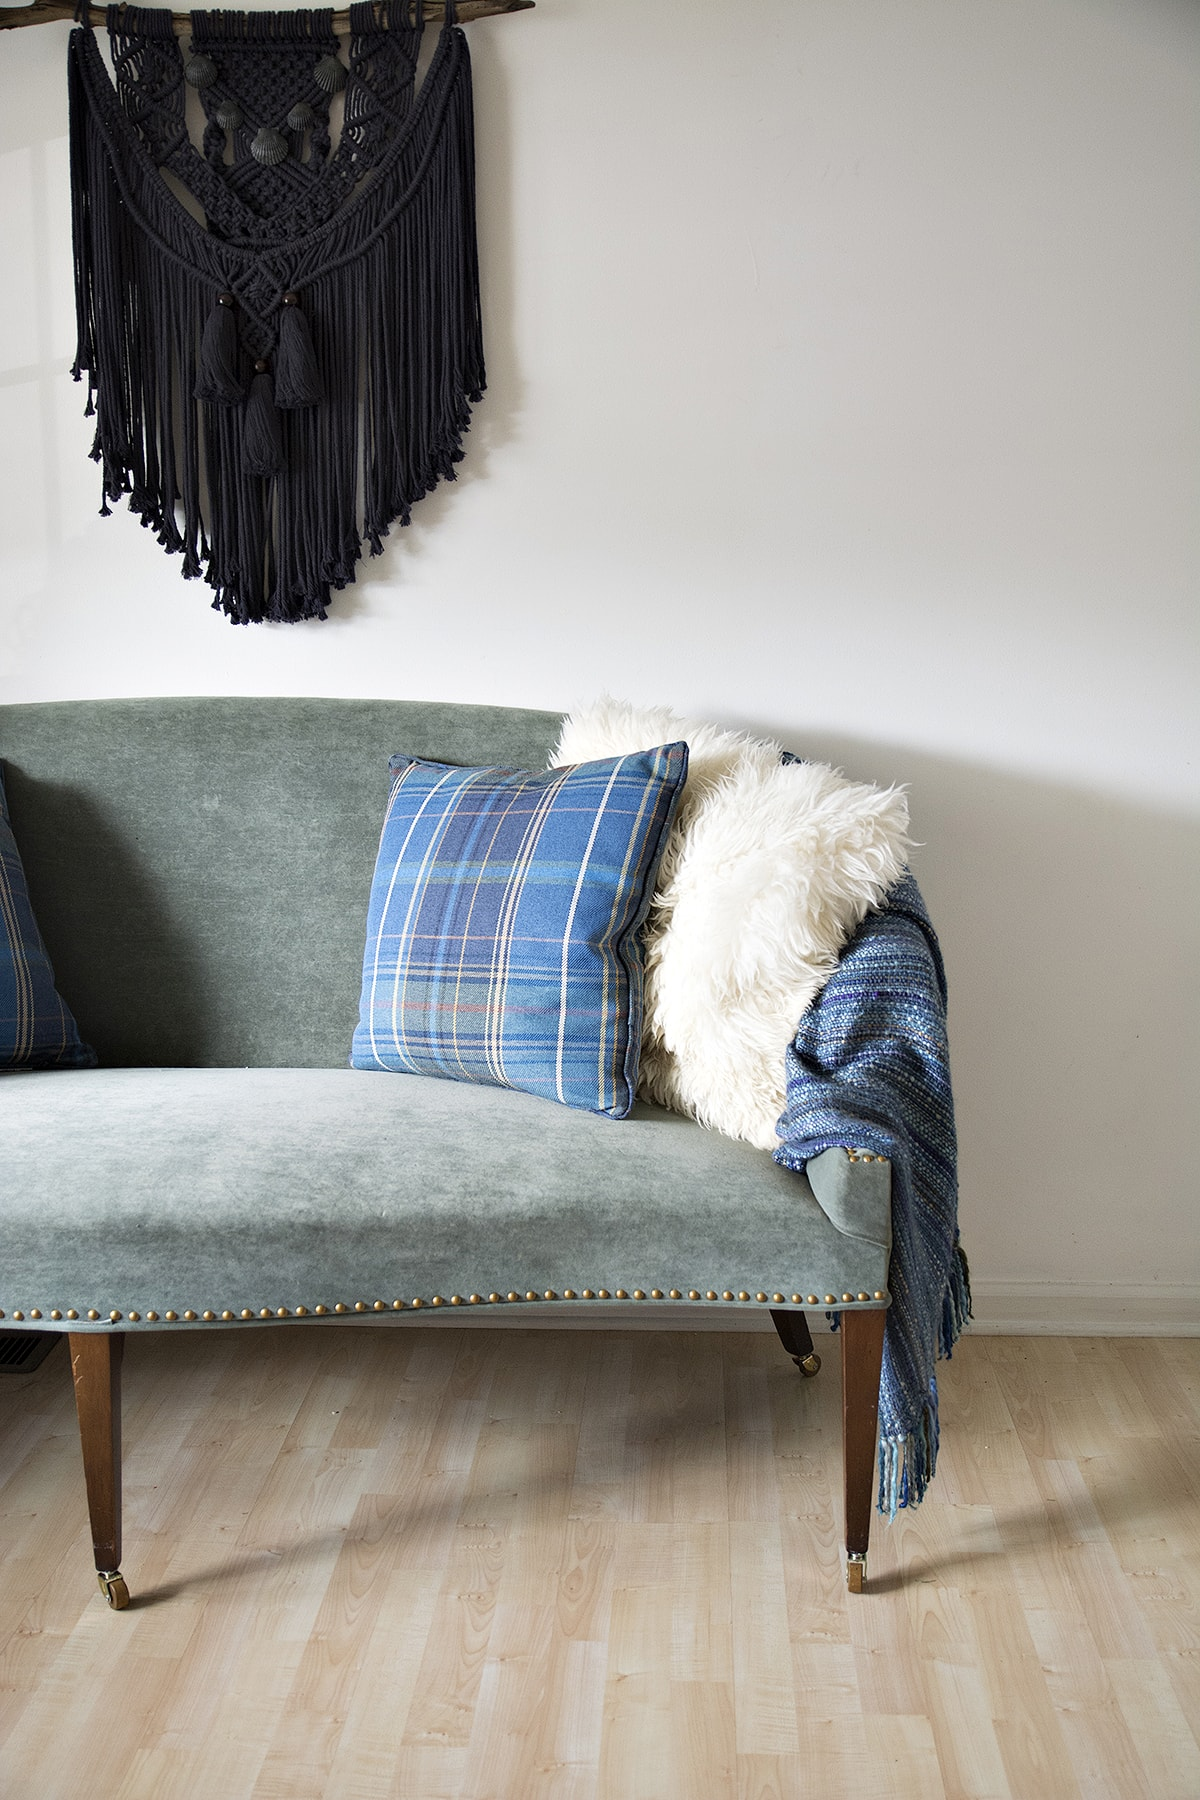 Raising A Sofa With Furniture Casters To Turn It Into A Dining Settee Bench Cuckoo4Design